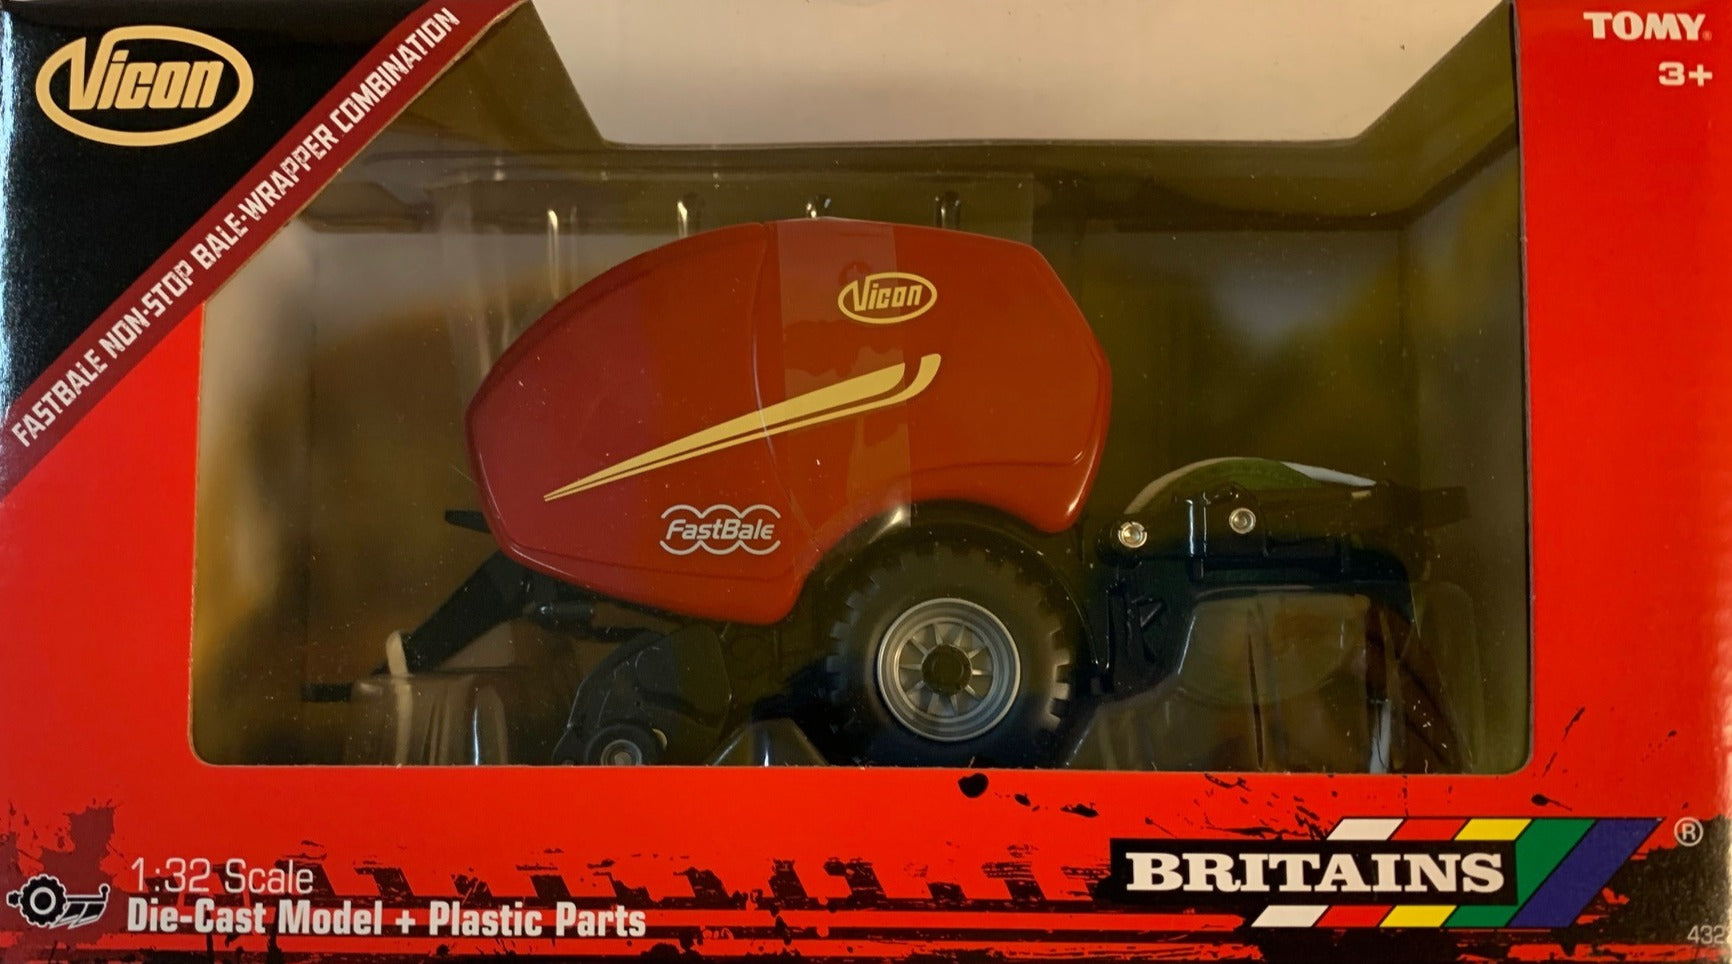 43221 BRITAINS VICON FASTBALE NON-STOP BALE-WRAPPER COMBINATION